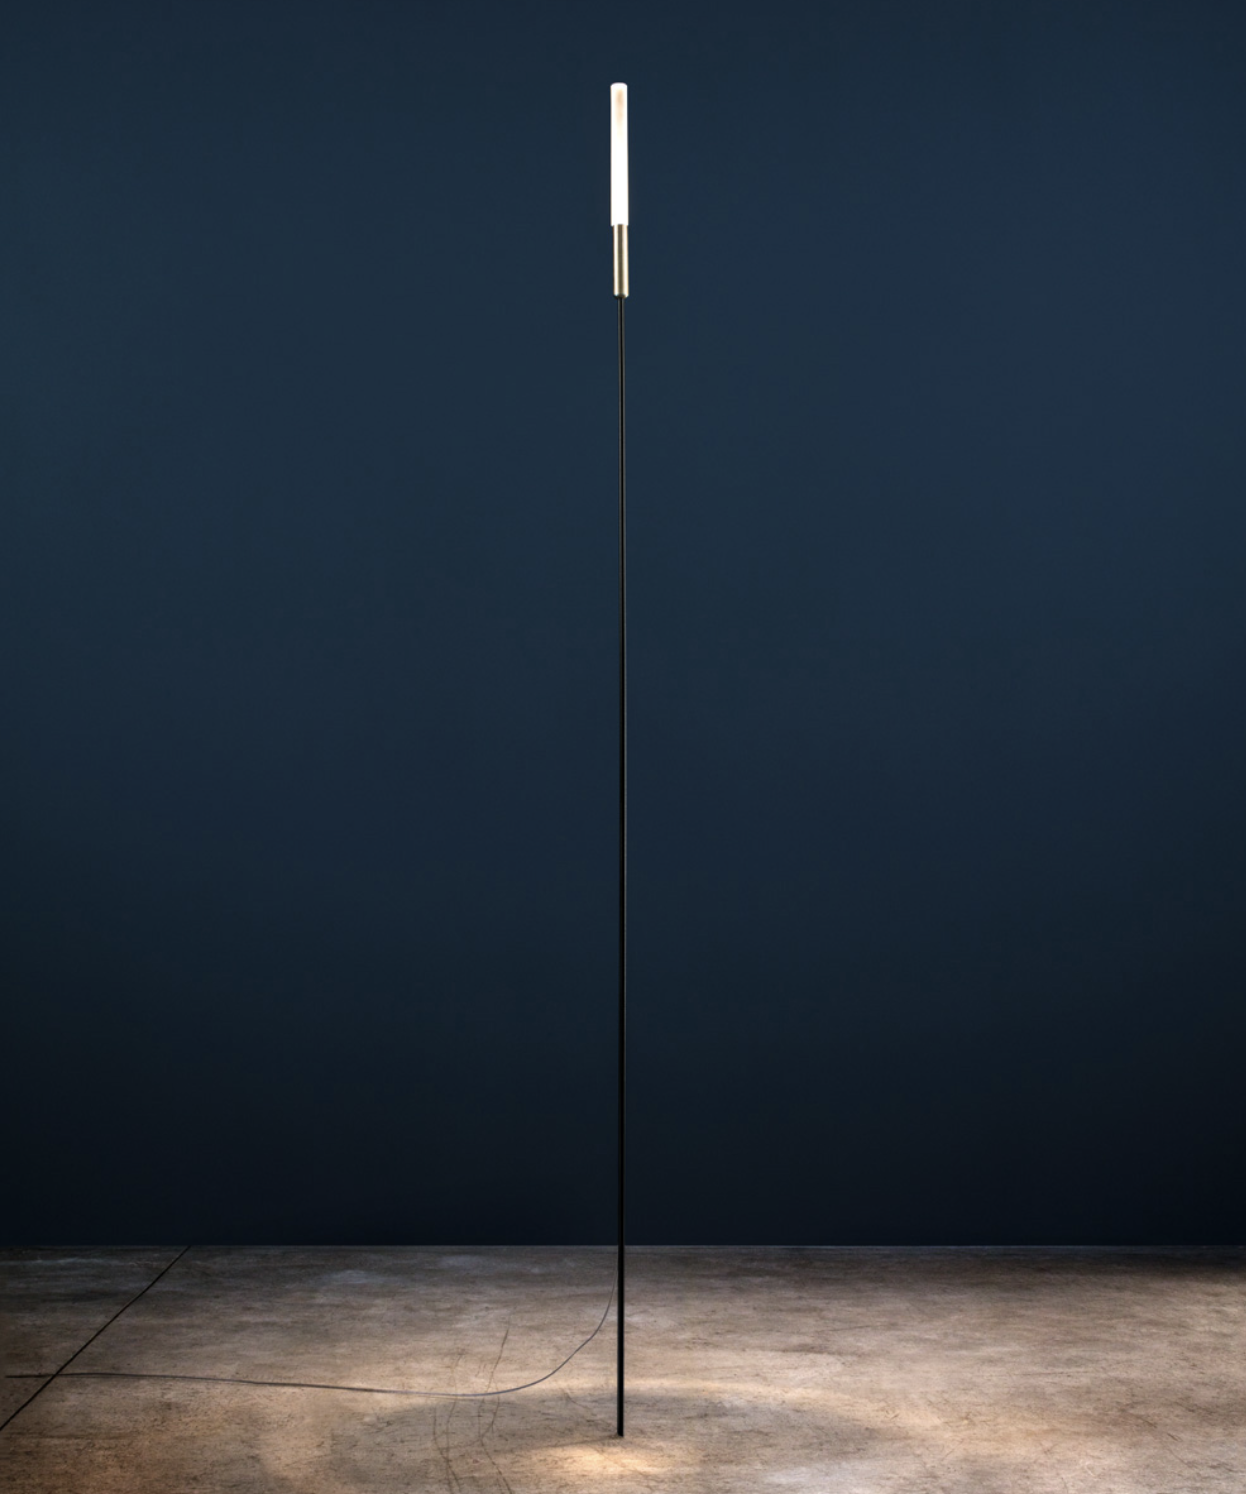 Syphasera Outdoor Standing Lamp - Enzo Catellani has designed his first collection of outdoor lights for Catellani & Smith in response to the trend that, over the years, has seen living spaces move outside into terraces and gardens, creating extensions of the house. Enzo Catellani's main goal was to create a collection of indoor lamps suitable for outdoor installation; lighting fixtures created for the outside, but able to recreate the same warmth and atmosphere as indoor lights. Glass plays a starring role in this collection. This is how were developed Syphasera , Syphasfera (both lamps in cooperation with Arch. Maurizio Quargnale) and Syphaduepassi, which, thanks to their minimal design, integrate perfectly with the surrounding environment, as if they were part of nature itself. | Matter of Stuff